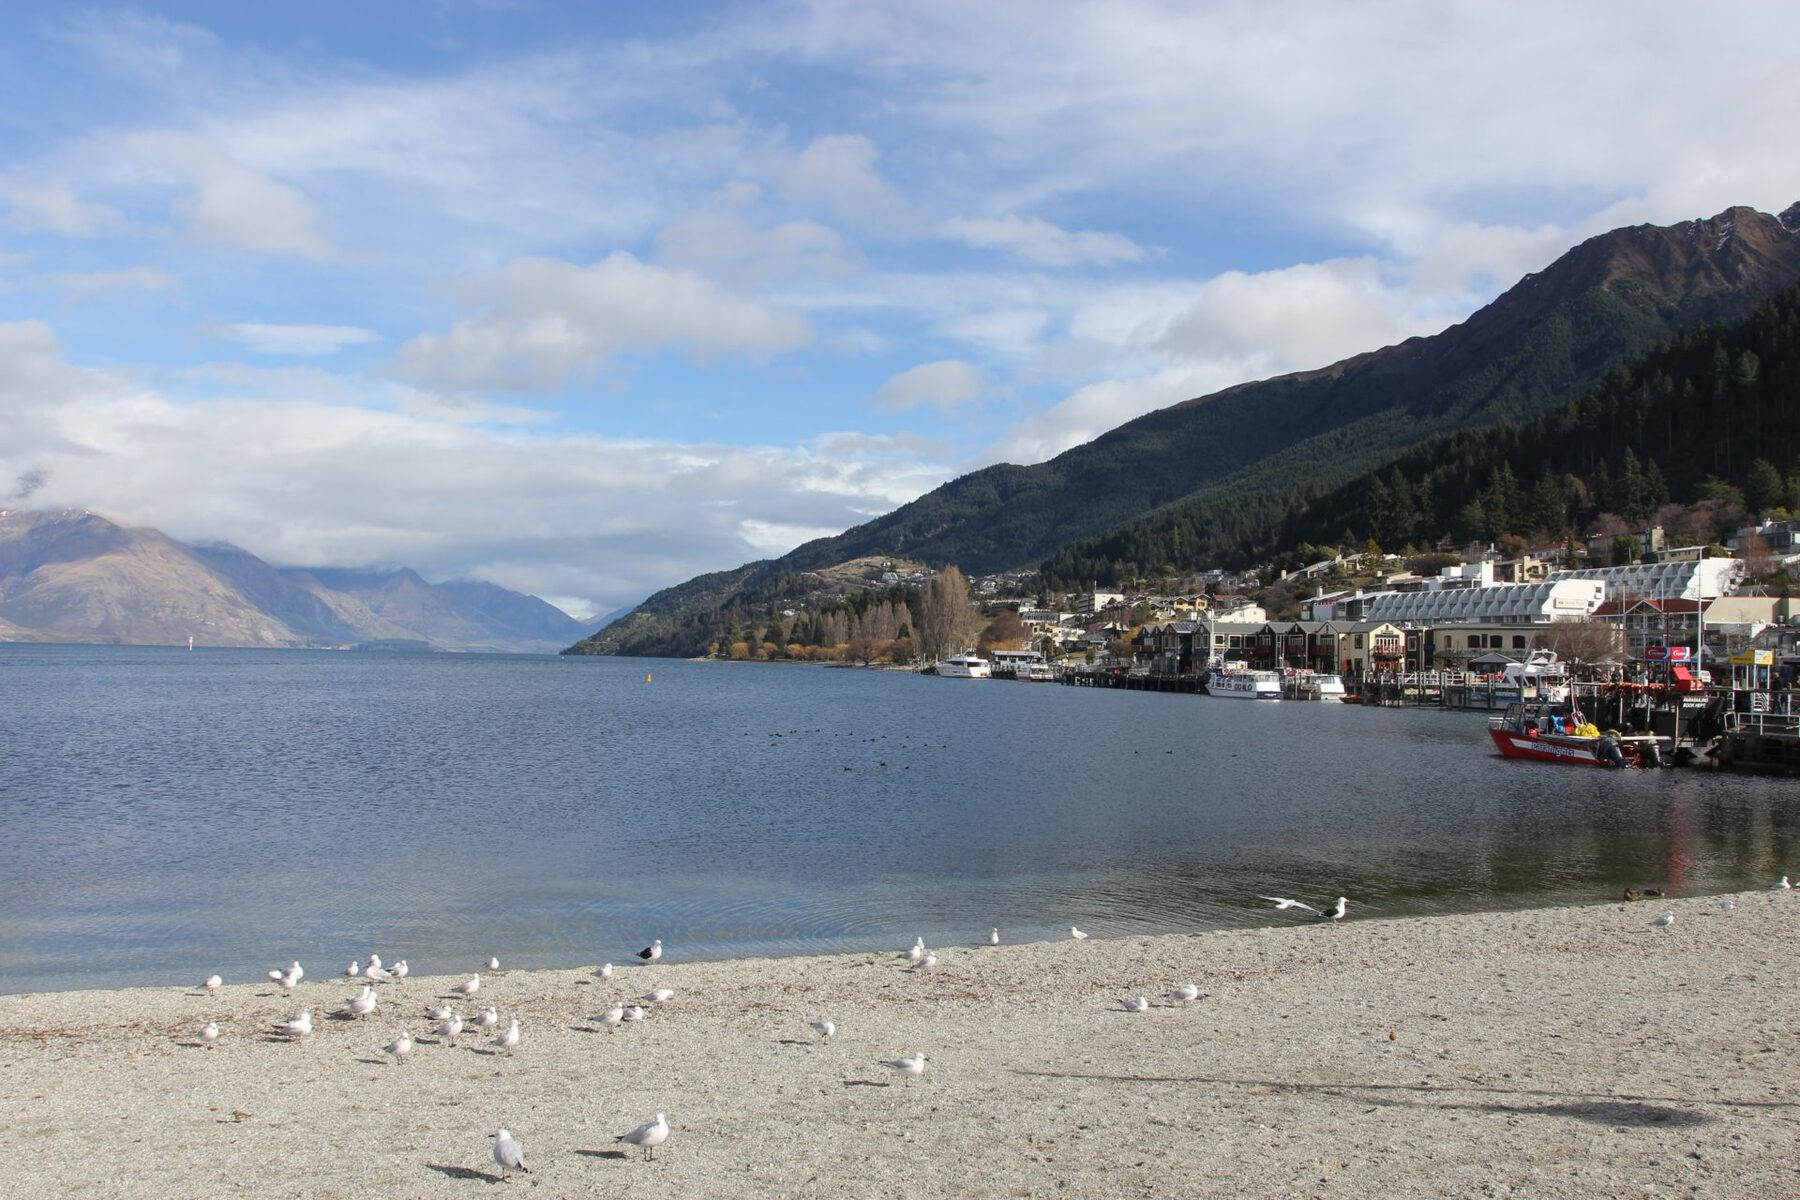 Edge of the lake in Queenstown, New Zealand. Find out if LivingSocial Escapes and Groupon Getaways are good deals or a scam in our Living Social & Groupon travel reviews.